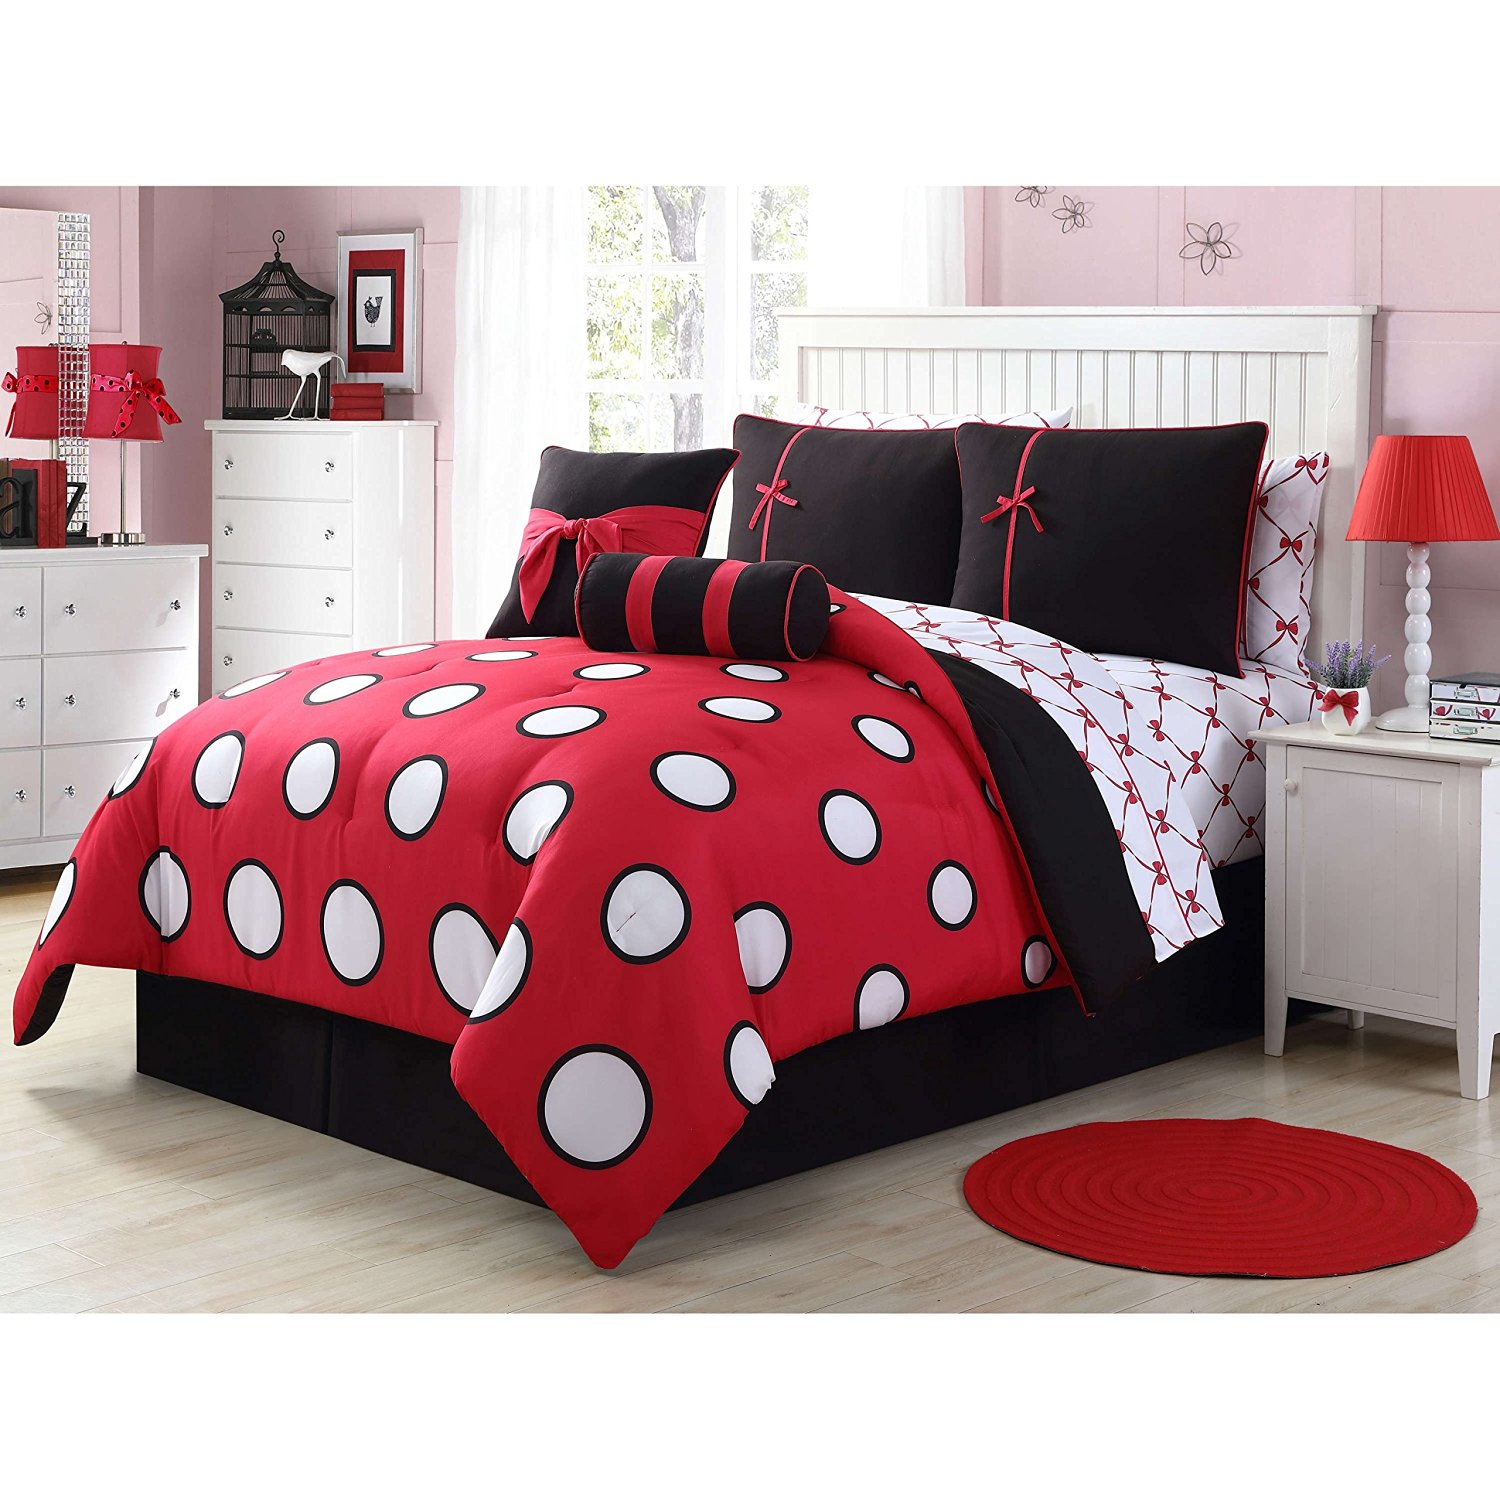 8 Piece Twin Black Red Contemporary Bed In A Bag With Sheet Set For Teen Girls, High Class Bedding, Polyester Fabric, Polka Dot Pattern, Machine Washable, Dark Black, Medium Red, White Dot